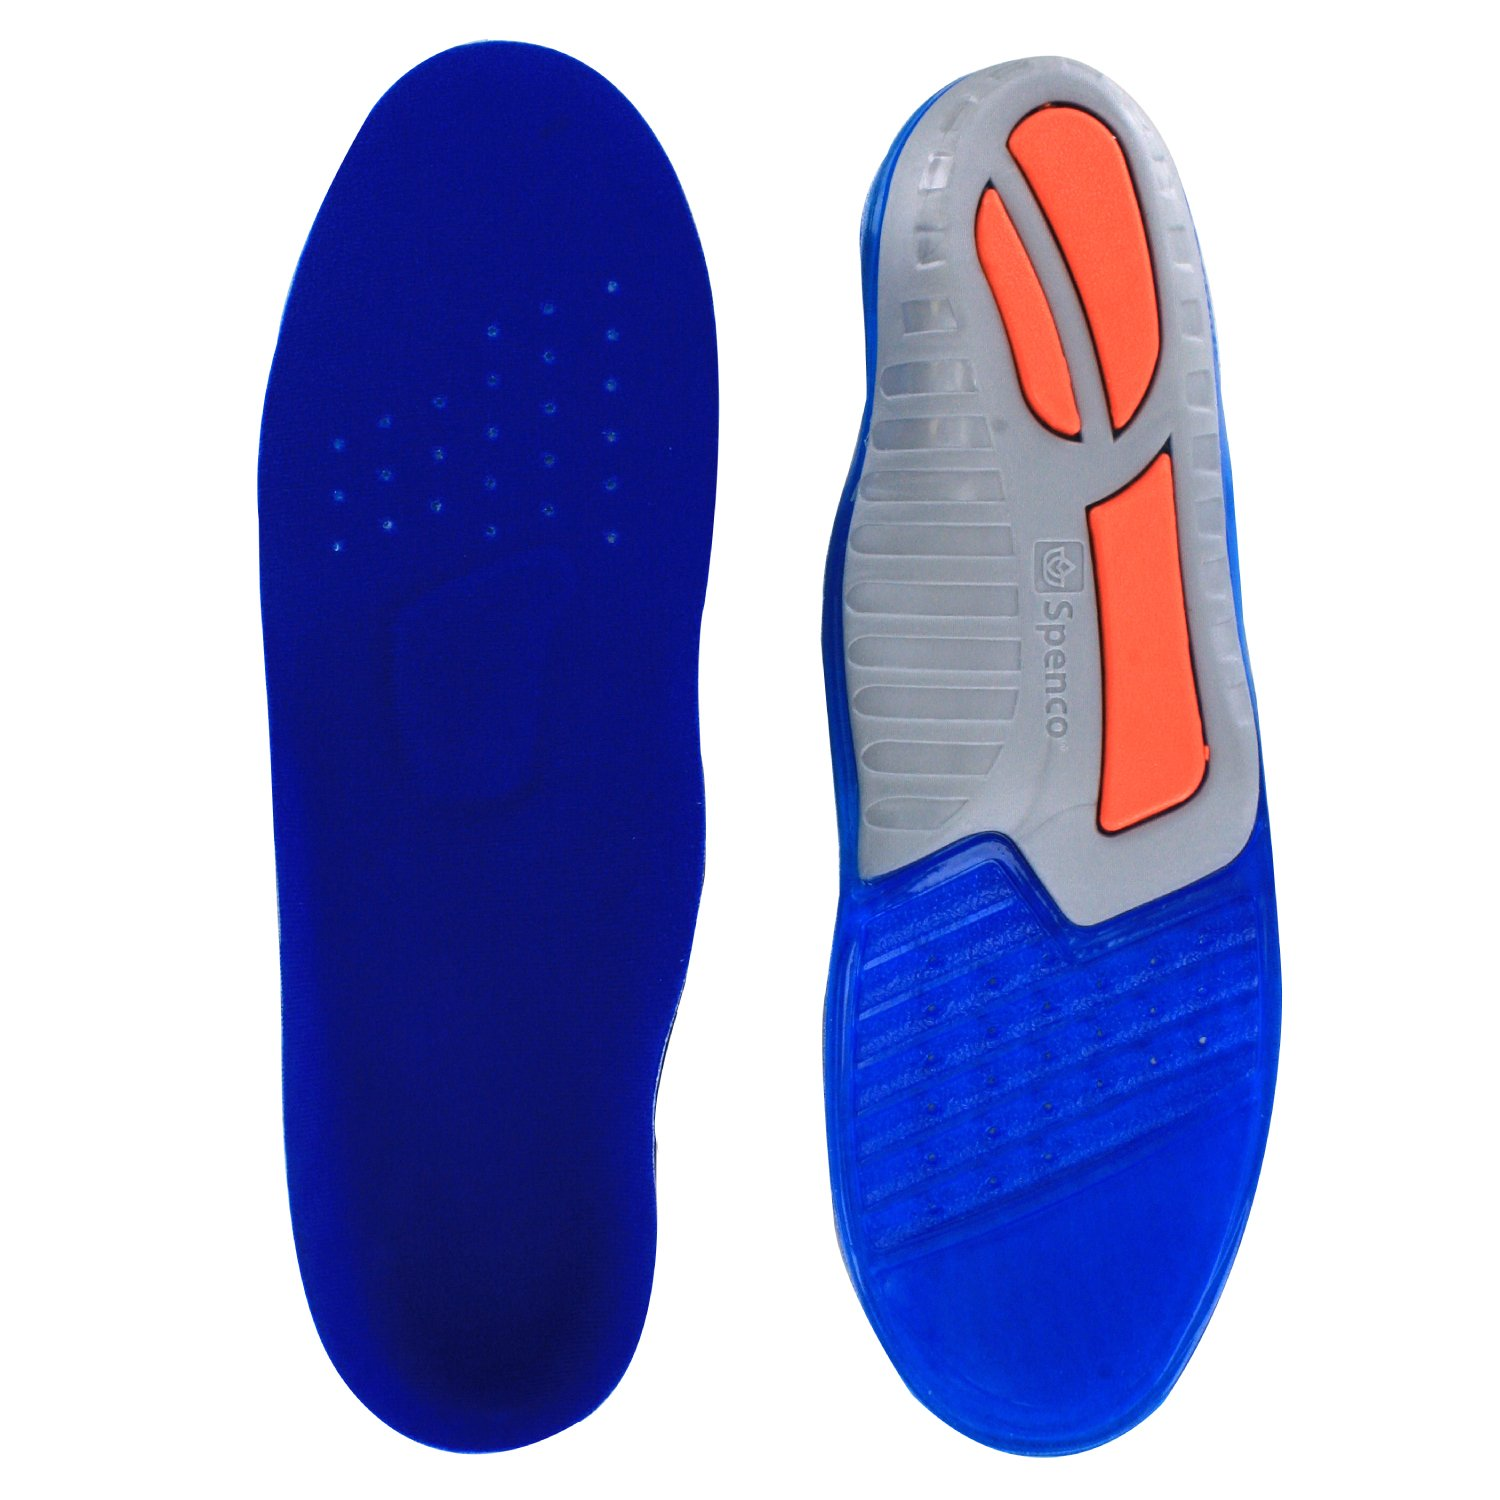 Spenco Total Support Gel Shoe Insoles, Women's 9-10.5/Men's 8-9.5